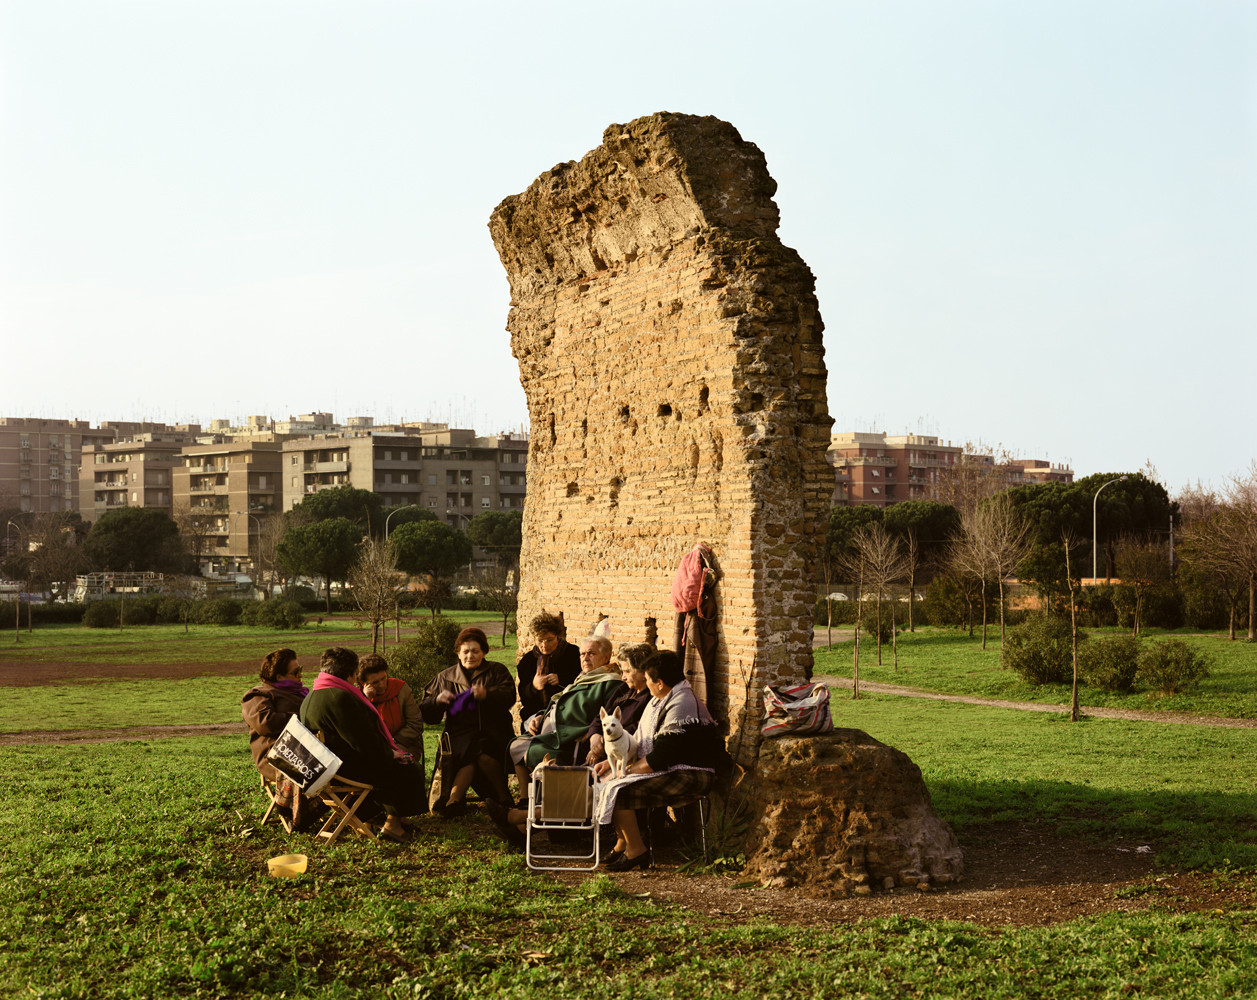 Joel Sternfeld, 'Women at a daily gathering beside an ancient Roman wall, Parco dei Gordiani, Rome, October', 1990